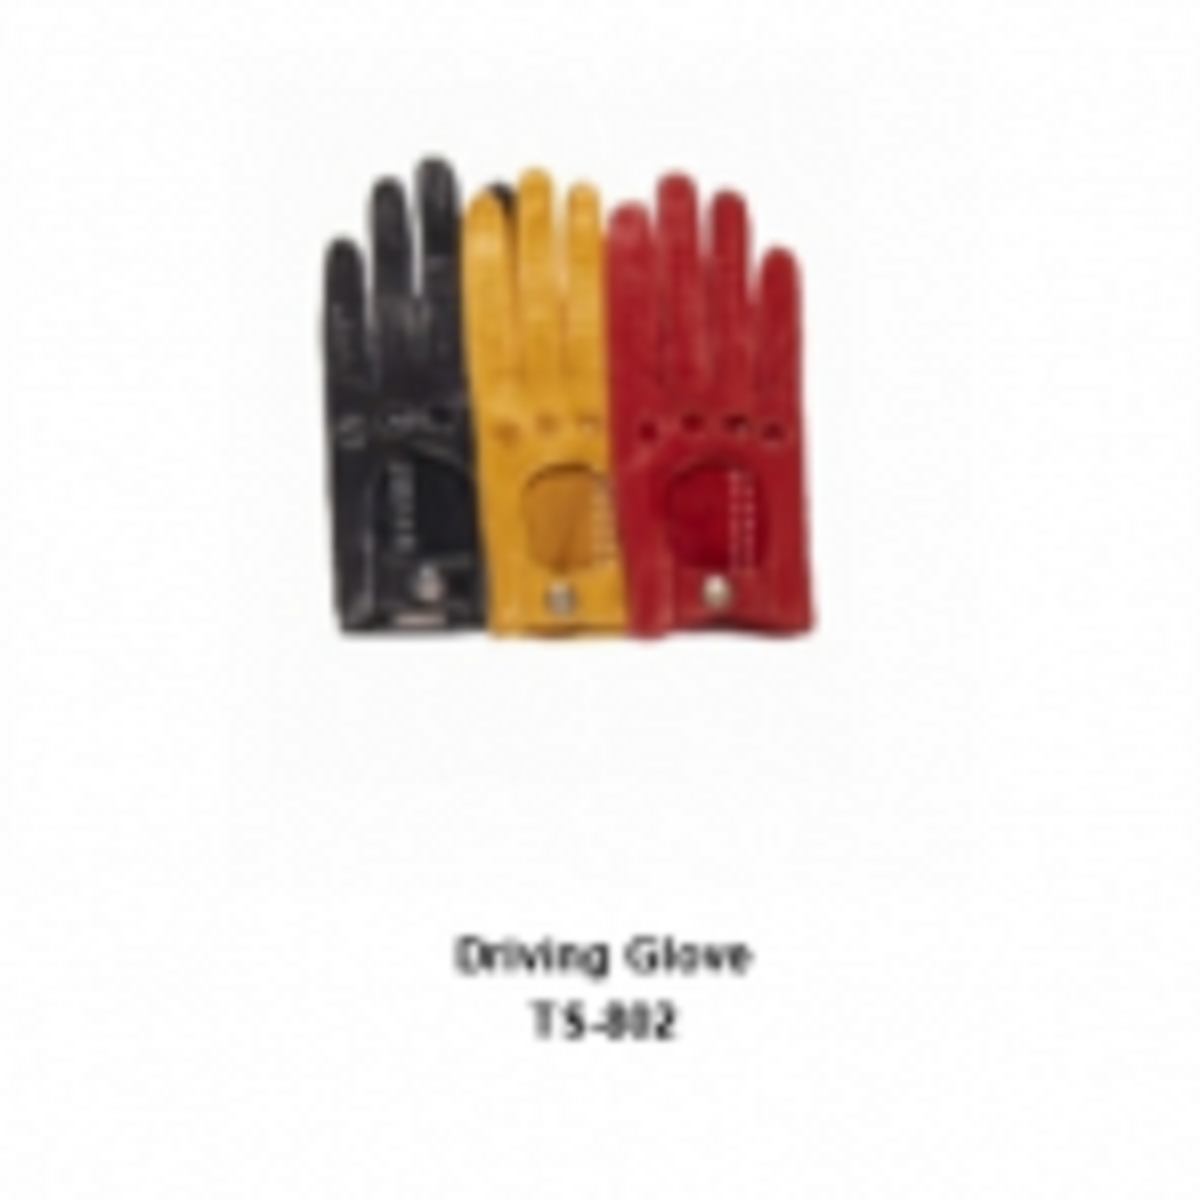 Leather Men's Fashion Driving Gloves Model No. TSI 802